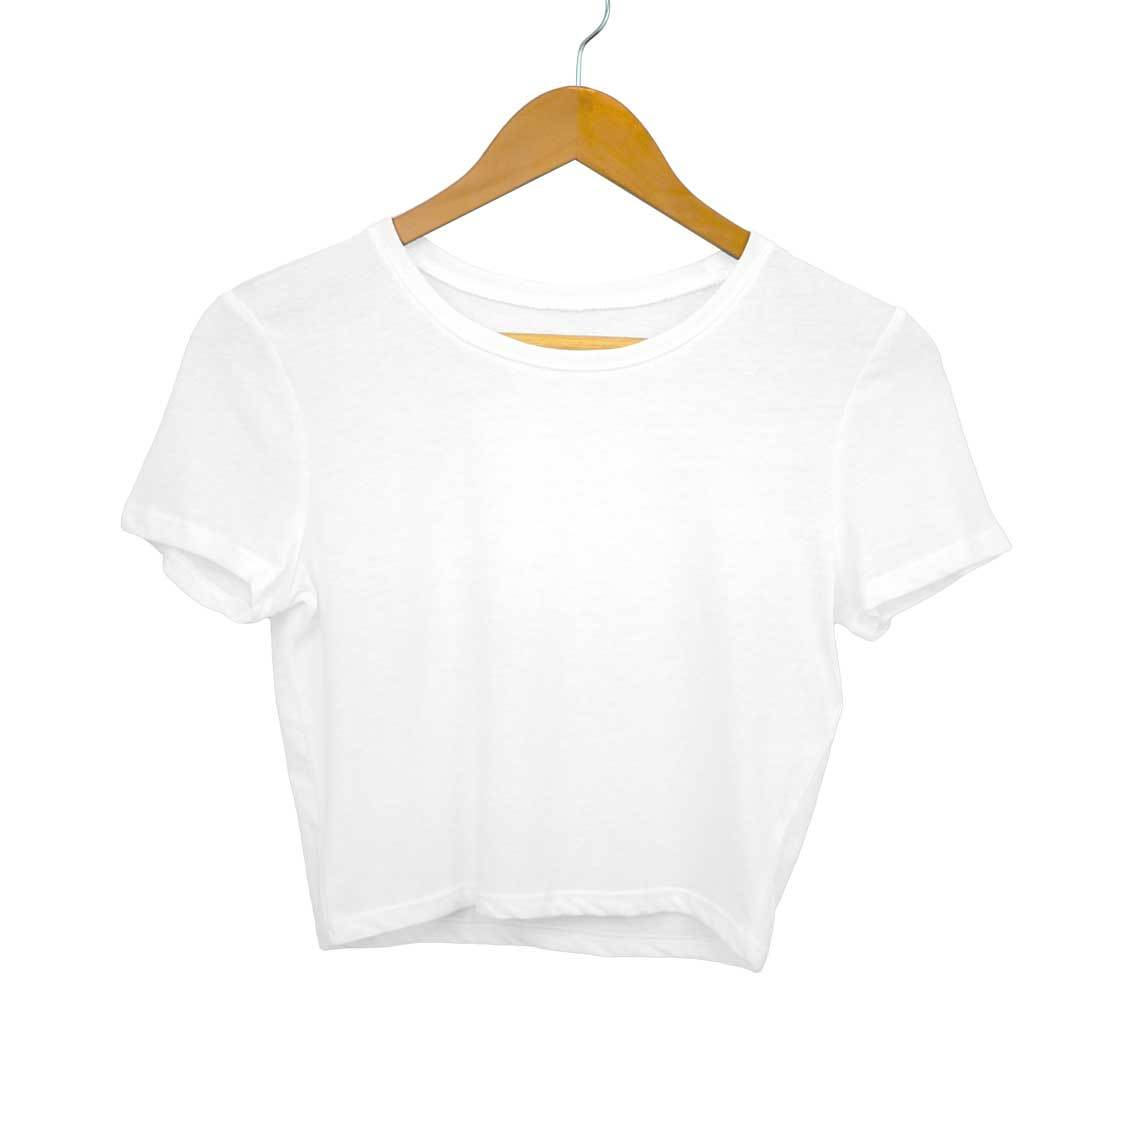 Plain Crop Tops